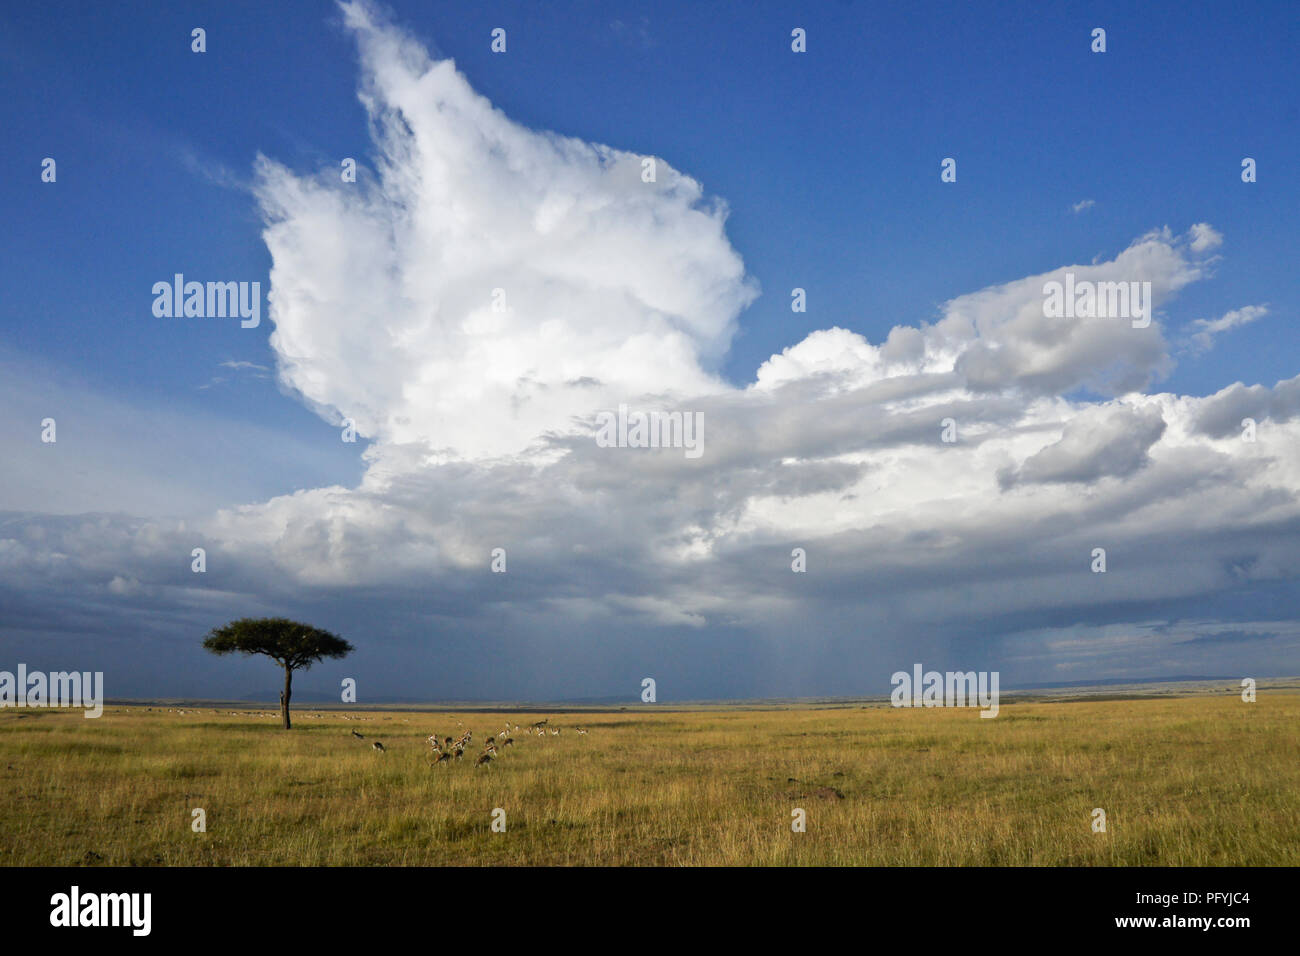 Dramatic cloud formation towers above wildlife grazing on the grassland of Masai Mara Game Reserve, Kenya - Stock Image